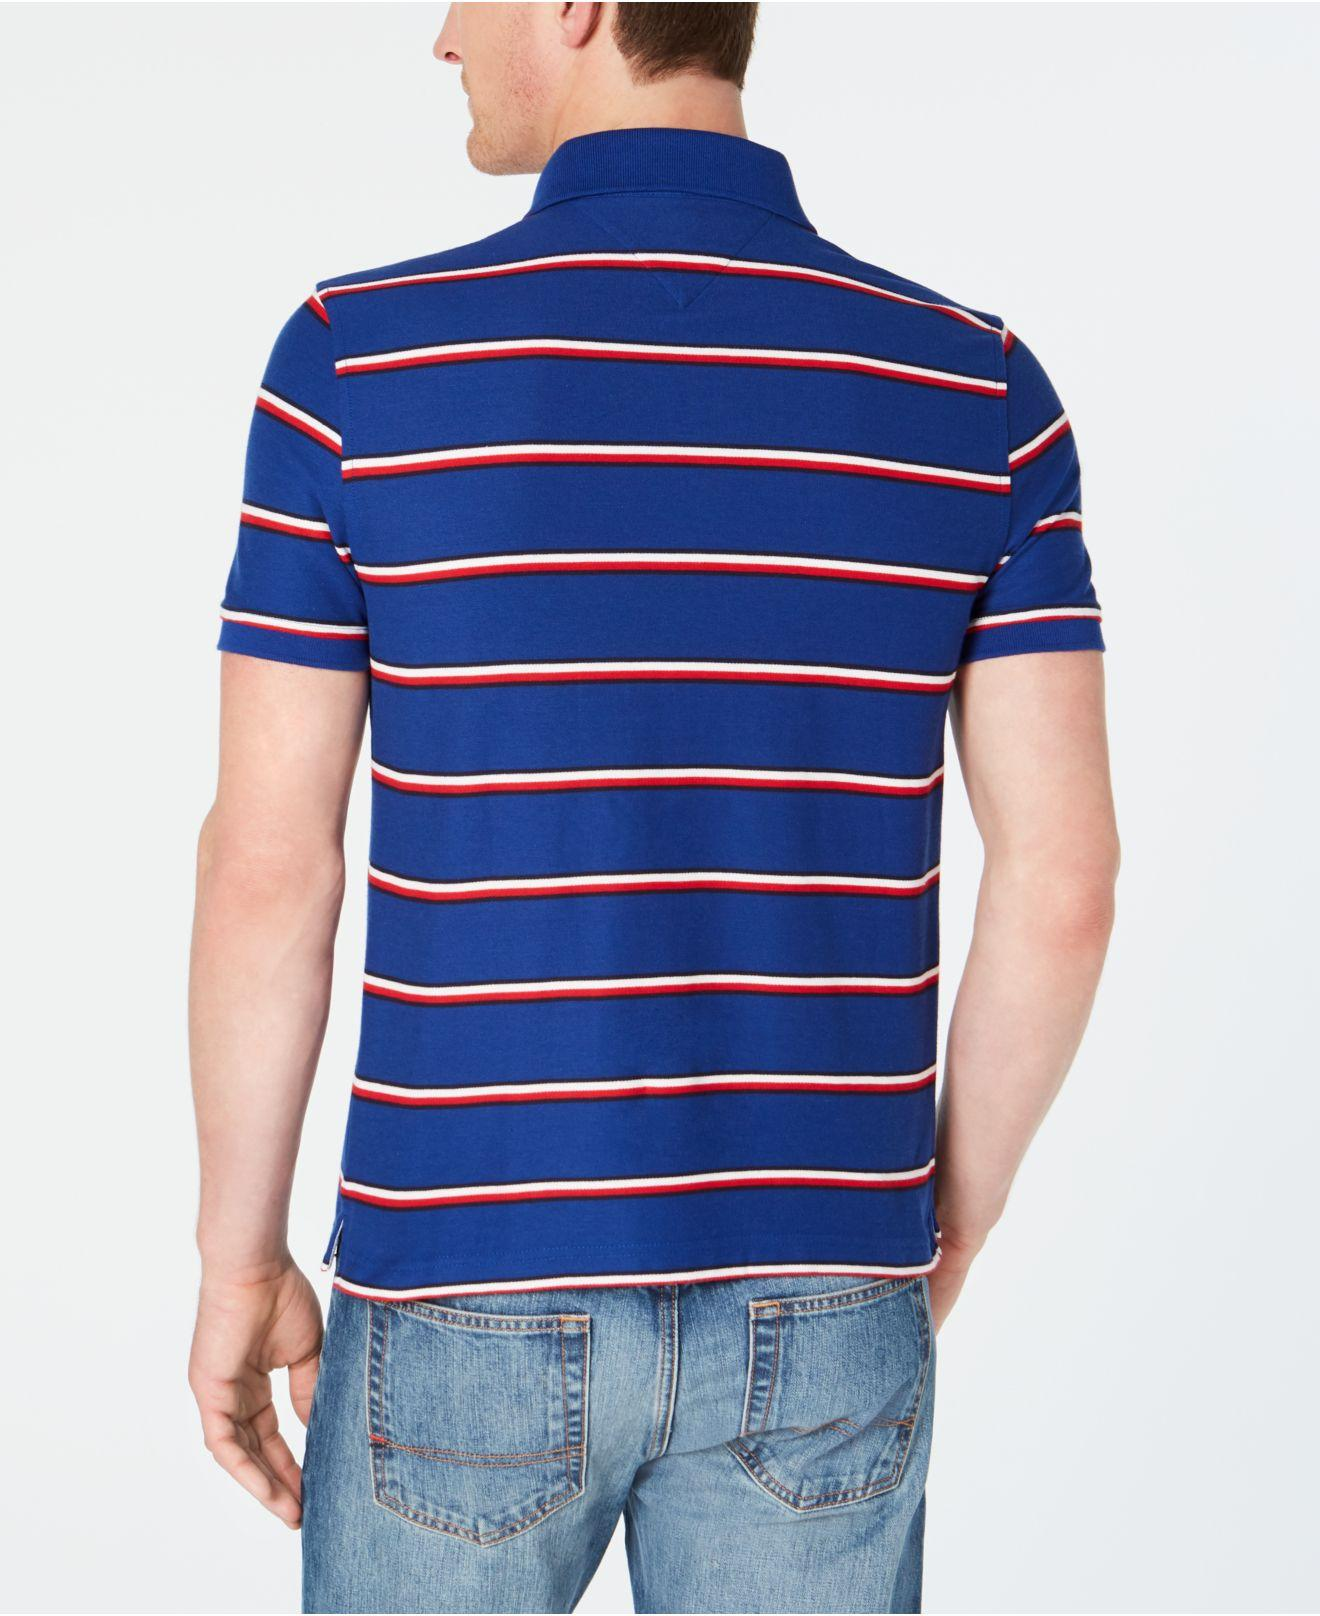 61c4bc51 Lyst - Tommy Hilfiger Marcus Striped Polo in Blue for Men